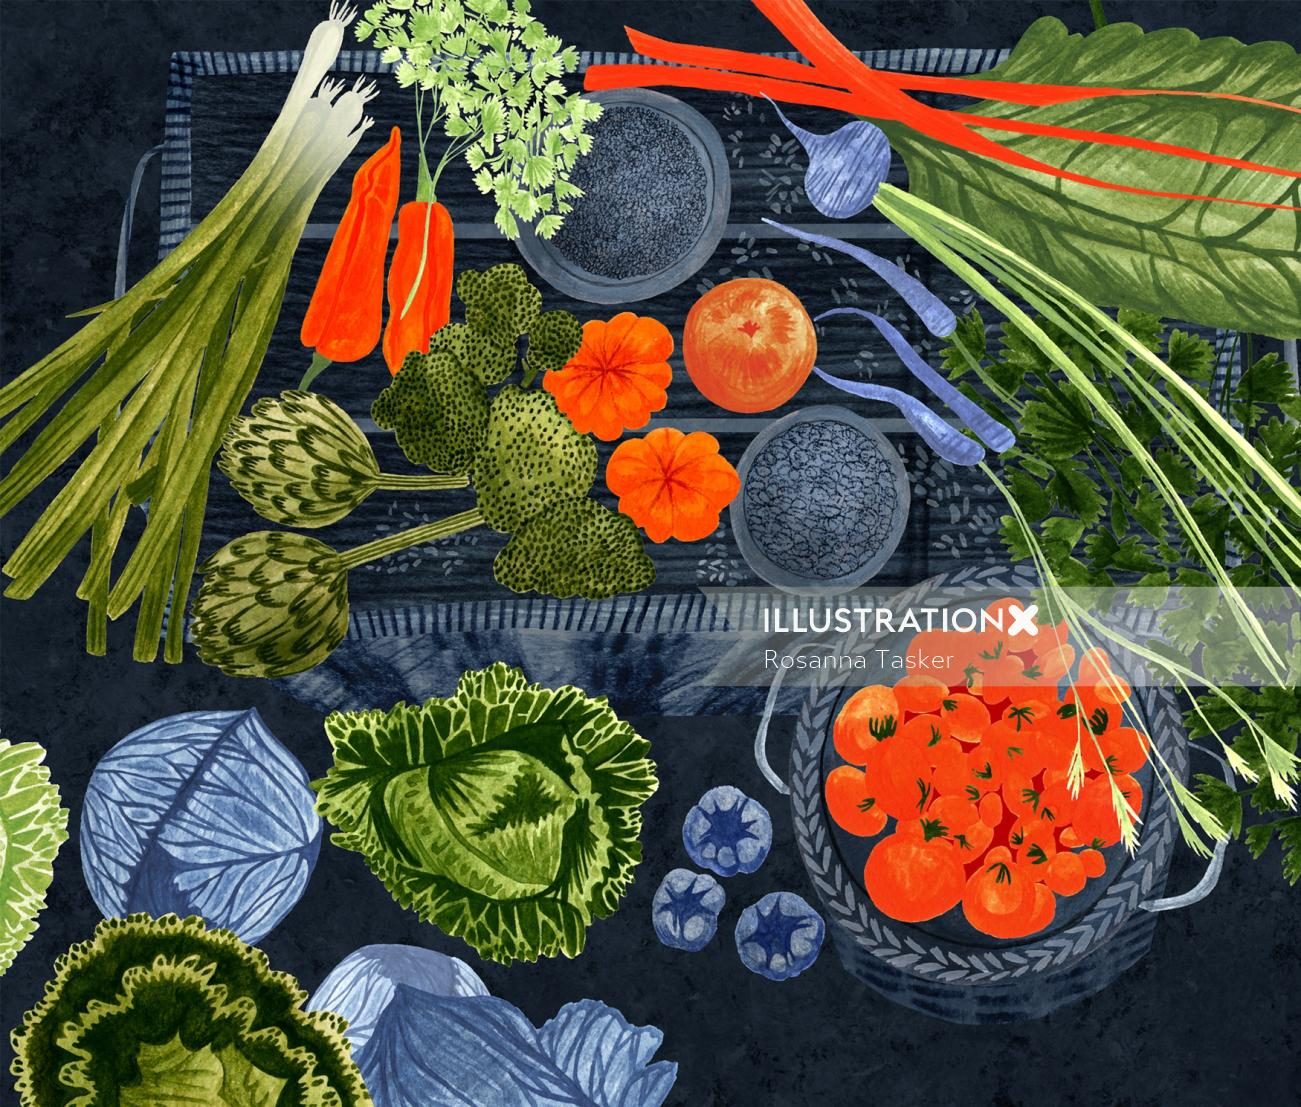 editorial, cover, cook, cooking, fresh food, food